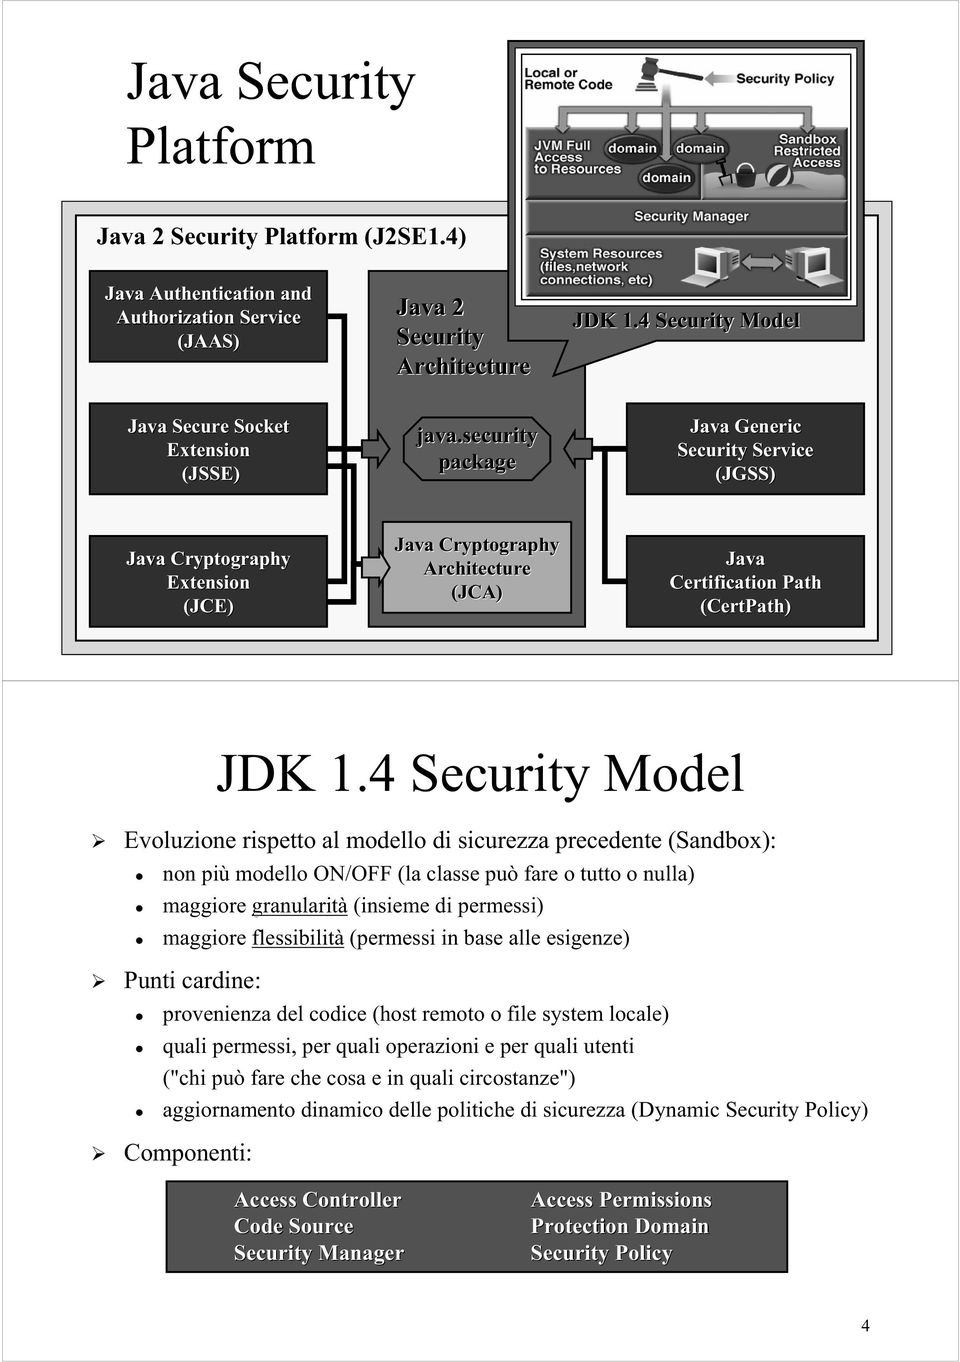 security package Java Generic Security Service (JGSS) Java Cryptography Extension (JCE) Java Cryptography Architecture (JCA) Java Certification Path (CertPath) 3 JDK 1.